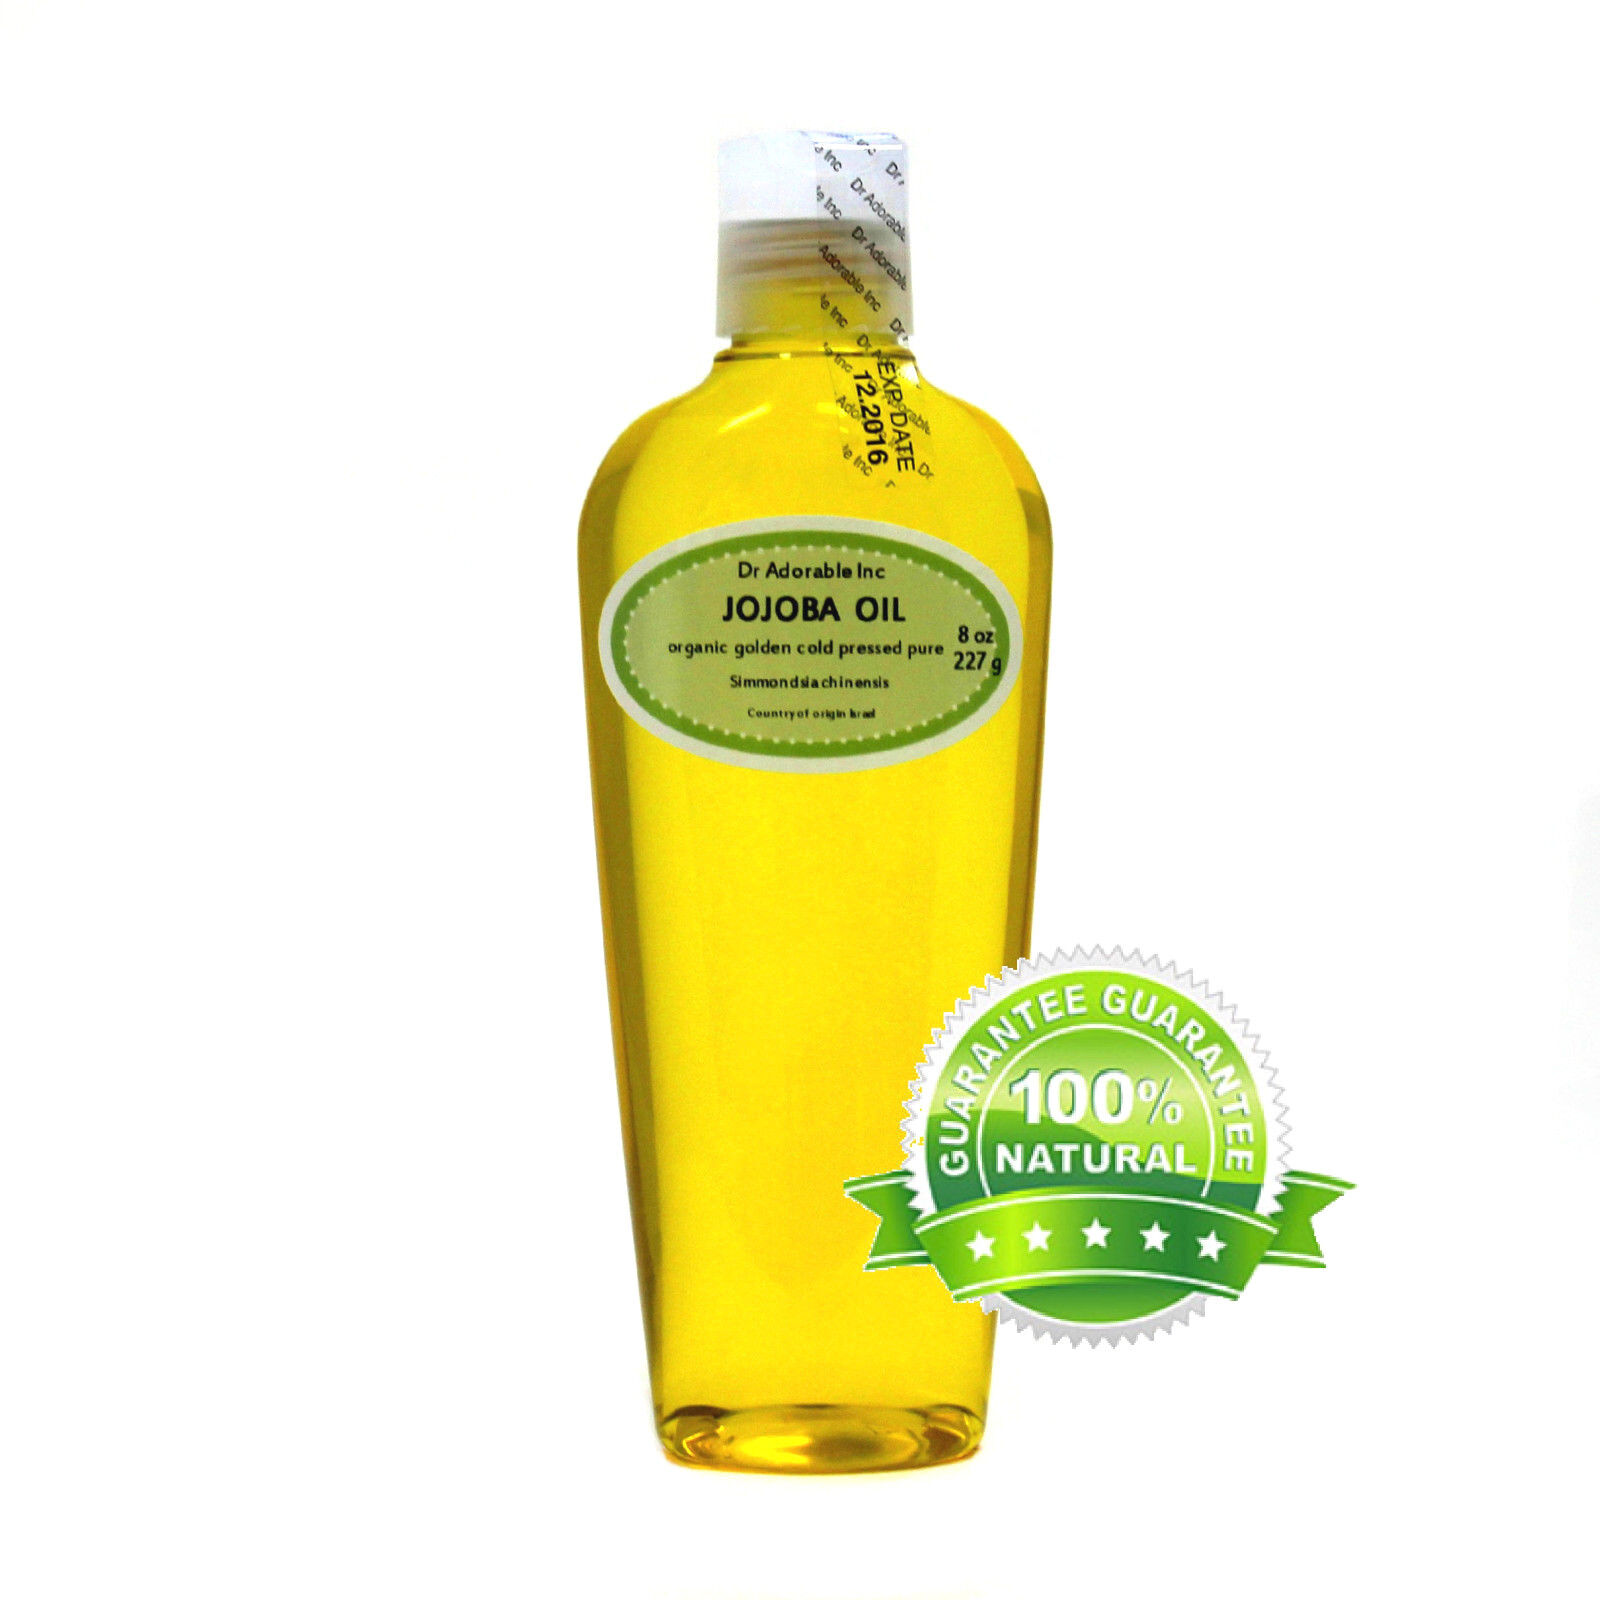 100% Pure Jojoba Oil Golden Organic by Dr.Adorable available